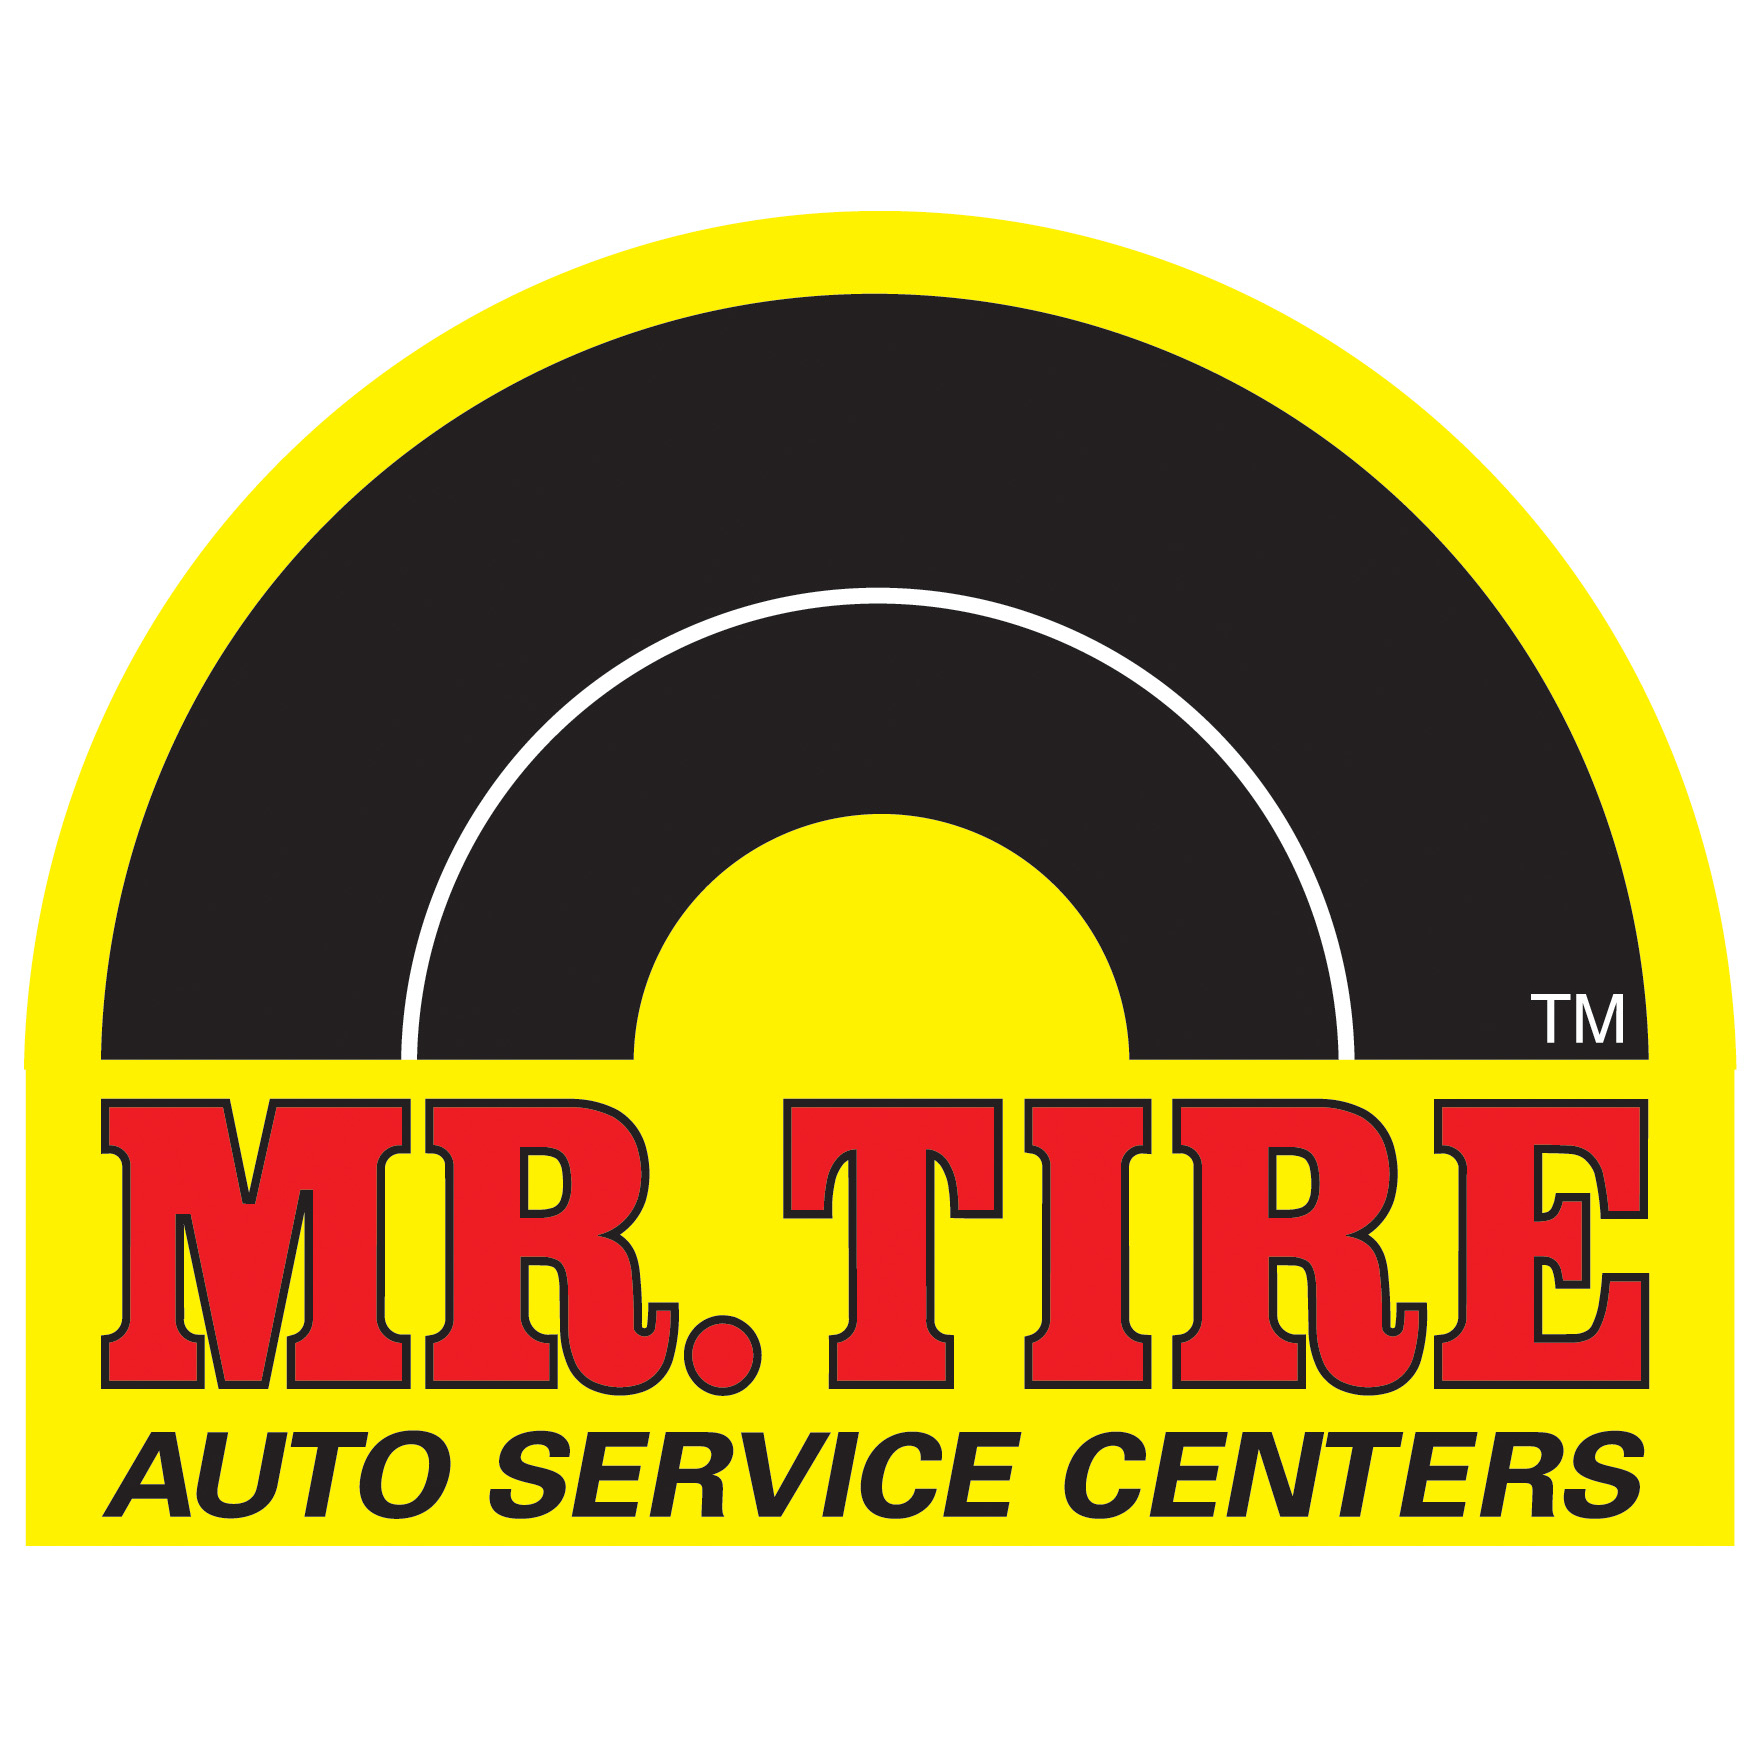 Mr Tire Auto Service Centers - Allison Park, PA - General Auto Repair & Service